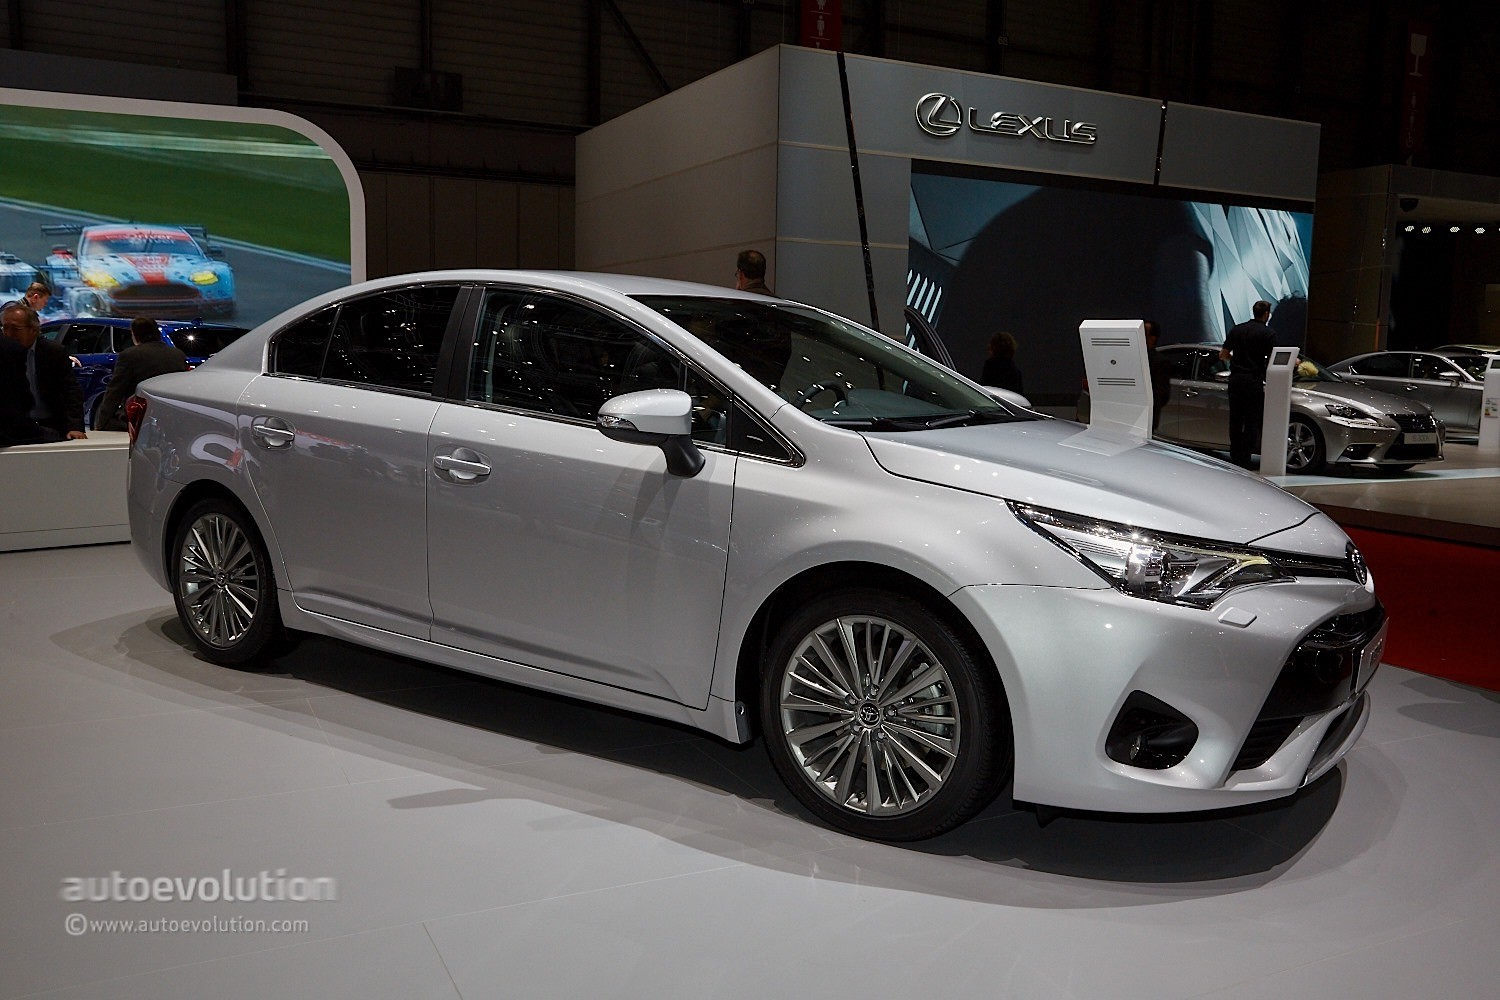 2015 toyota avensis facelift looks sharper than ever in geneva autoevolution. Black Bedroom Furniture Sets. Home Design Ideas